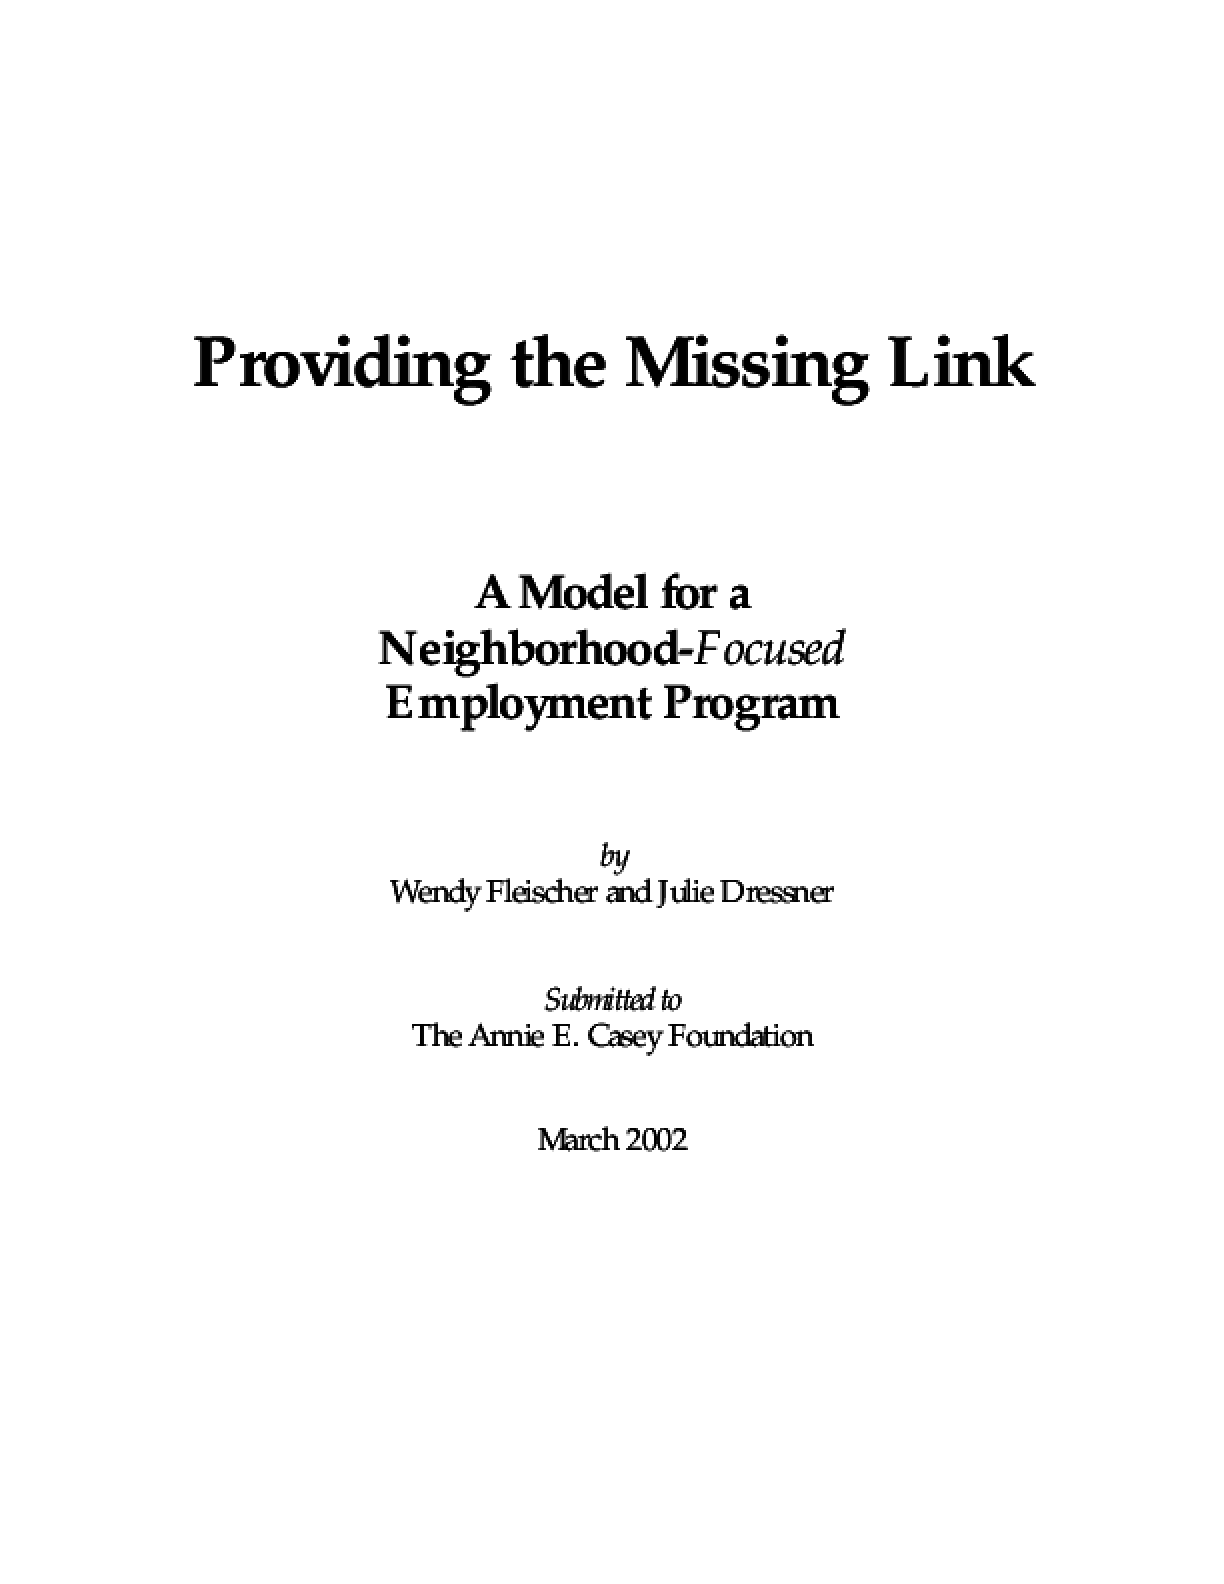 Providing the Missing Link: A Model for a Neighborhood-Focused Employment Program